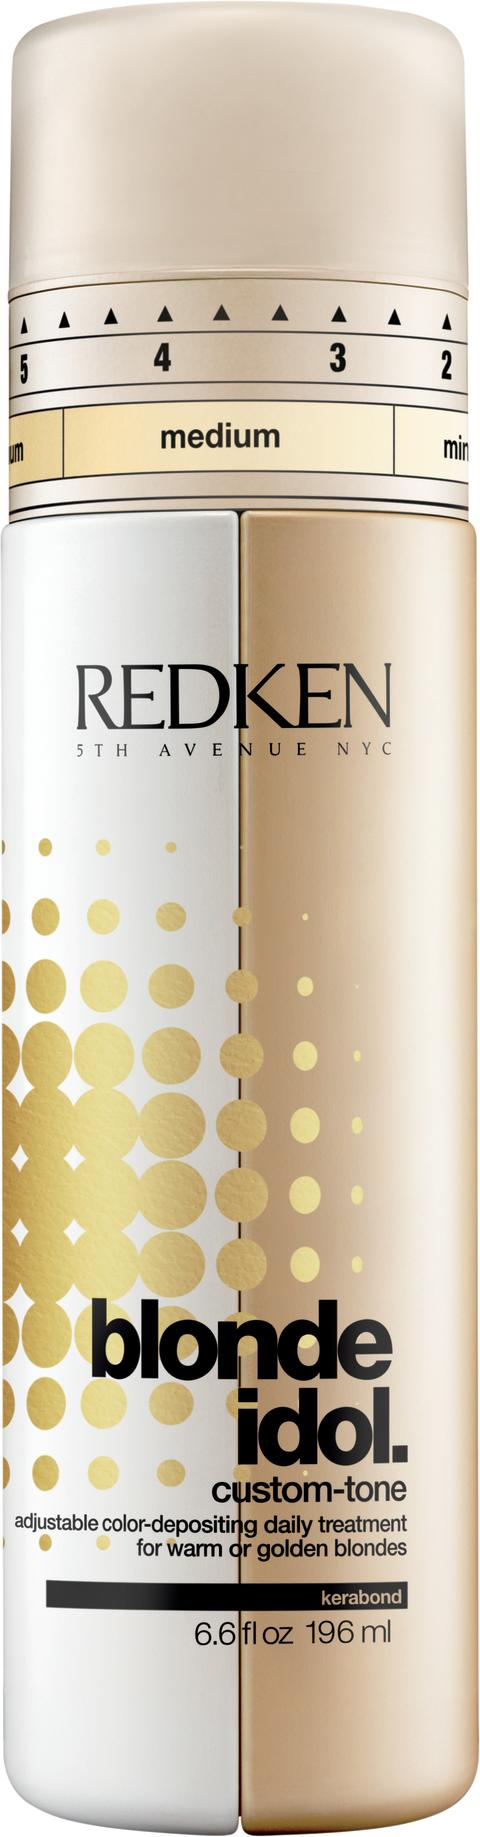 Redken Blonde Idol Cond Warm 390 kr